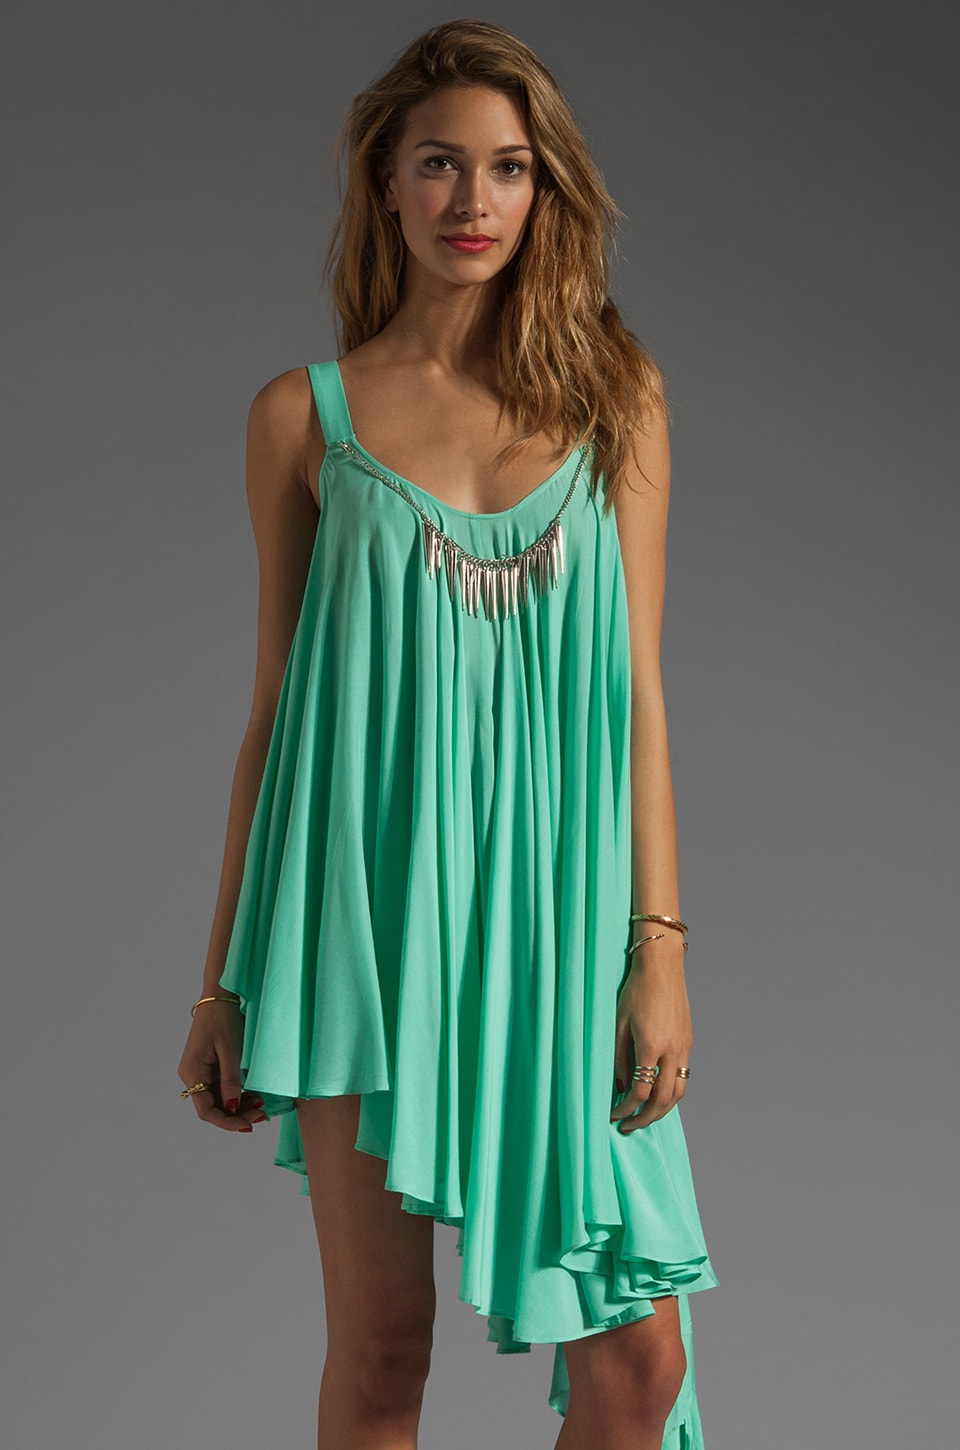 bless'ed are the meek Chain Gang Dress in Mint